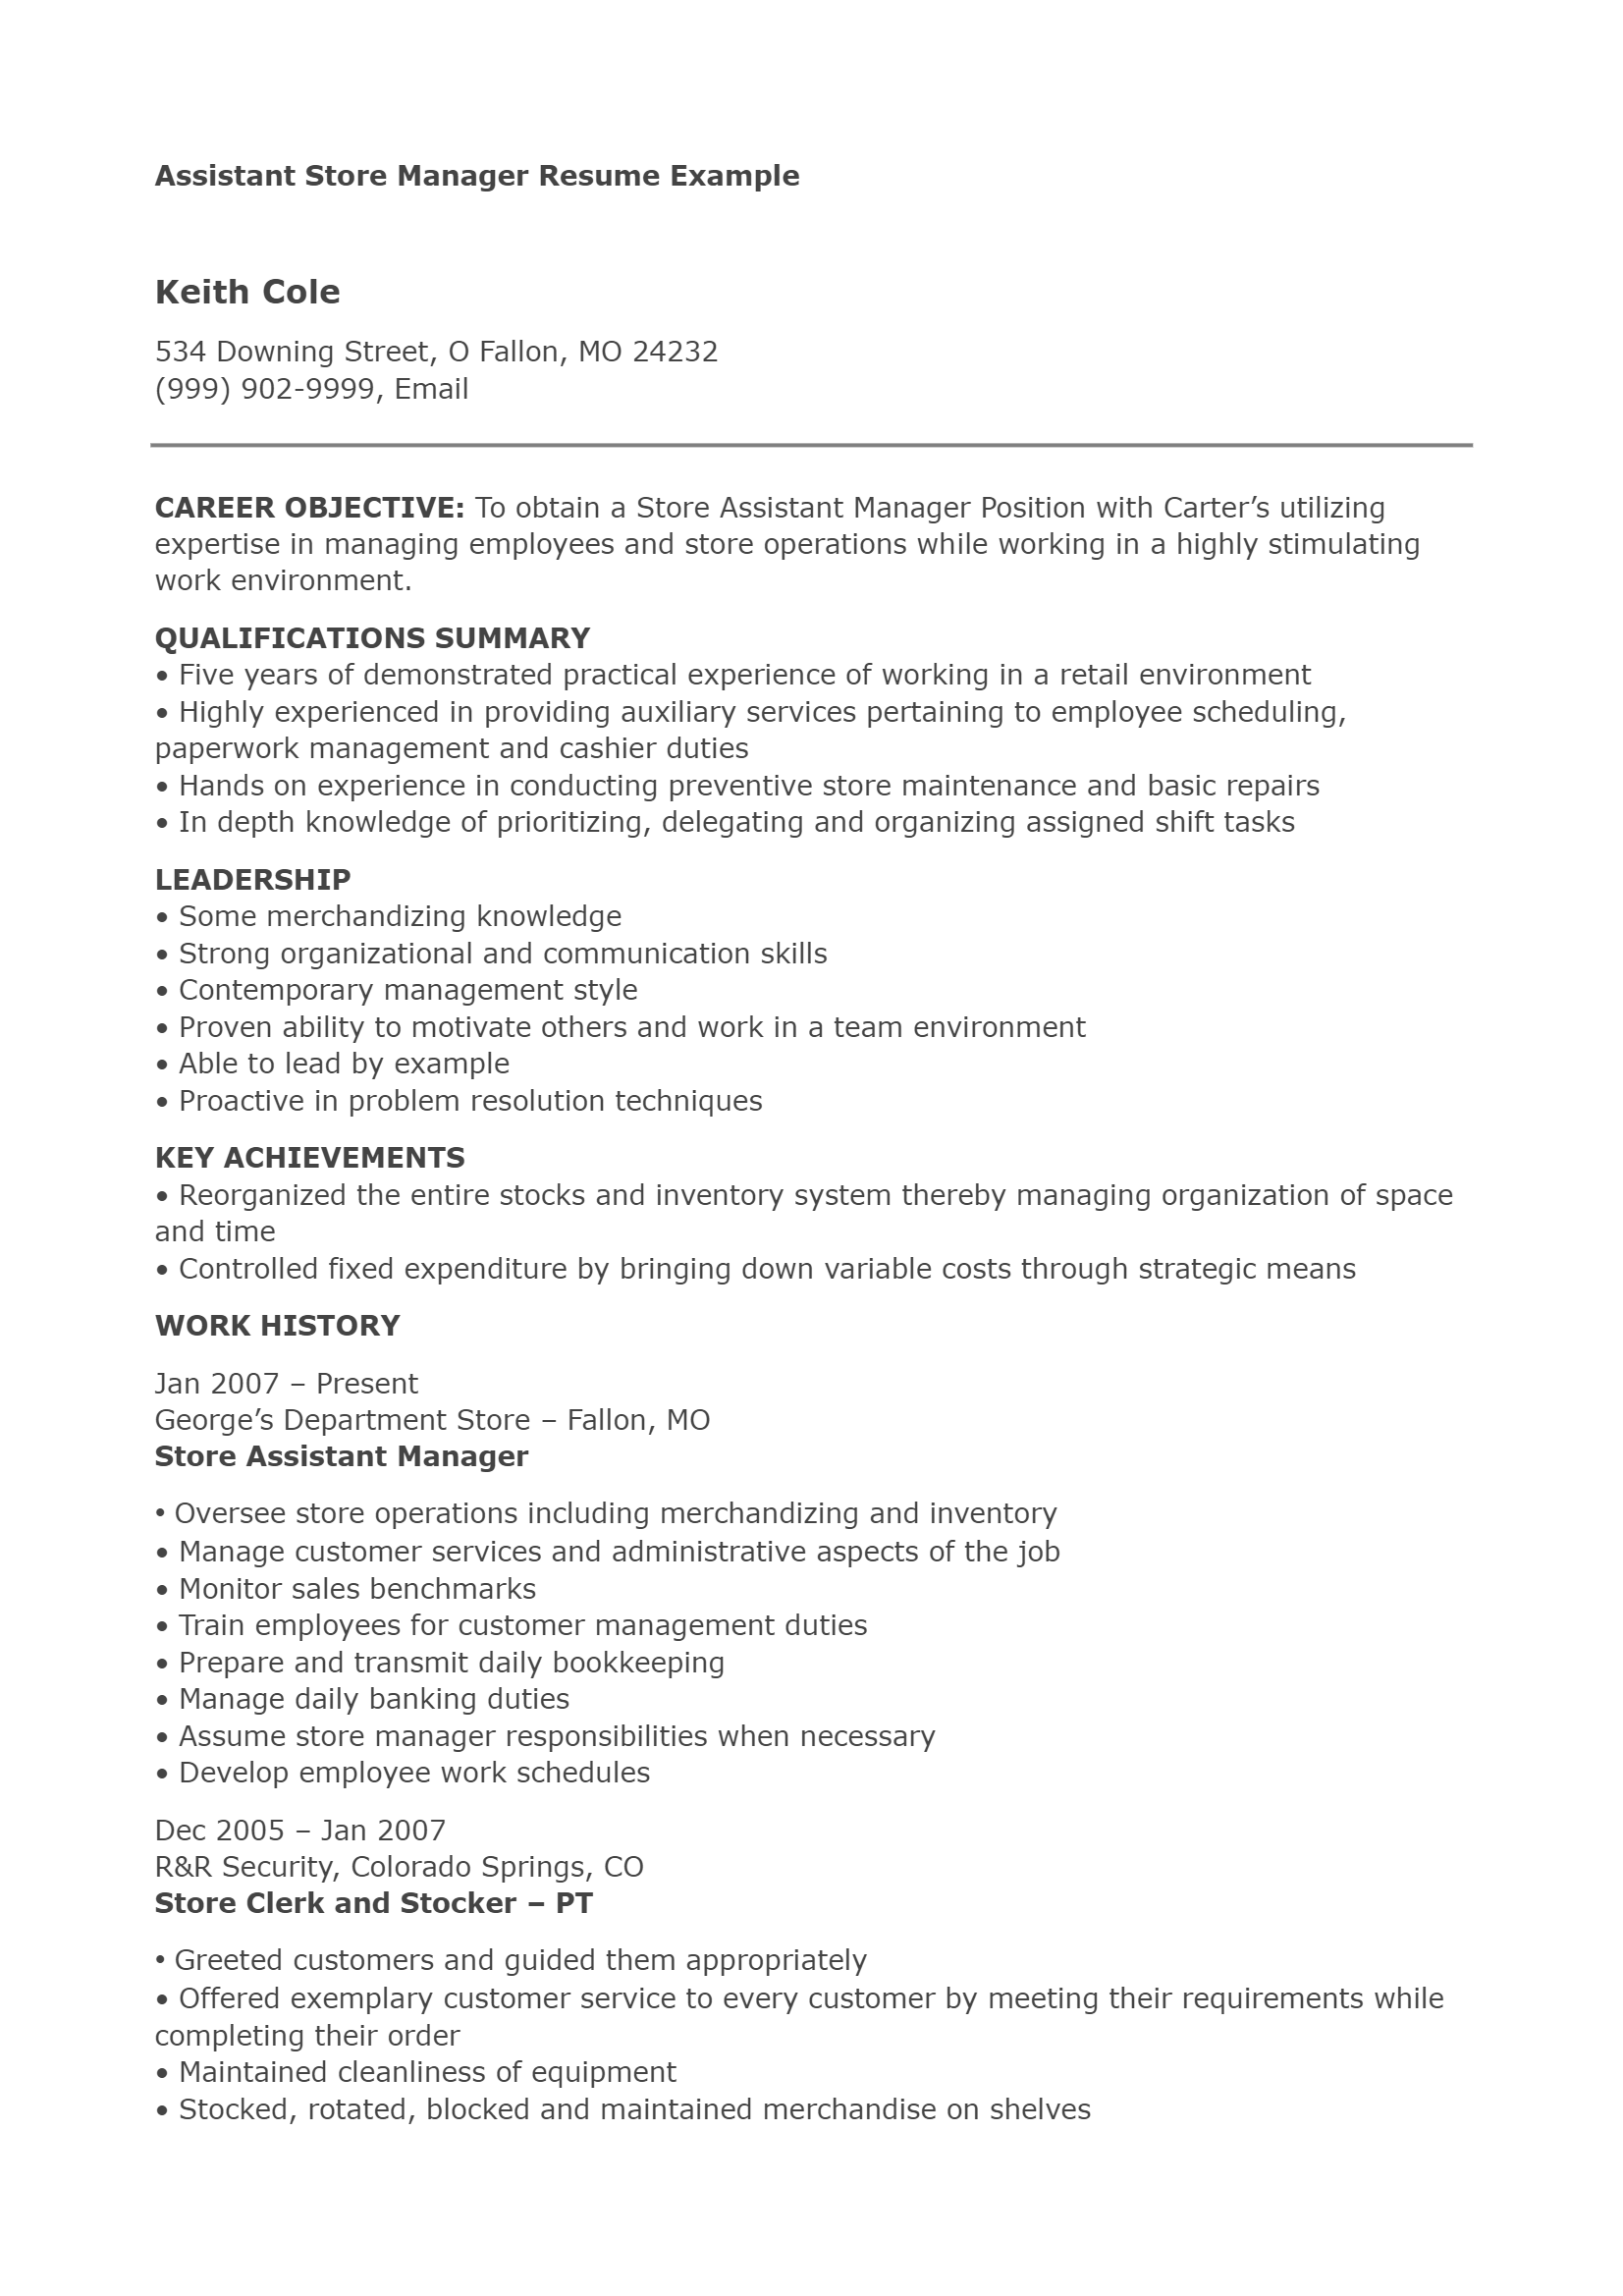 Assistant Store Manager .Docx (Word)